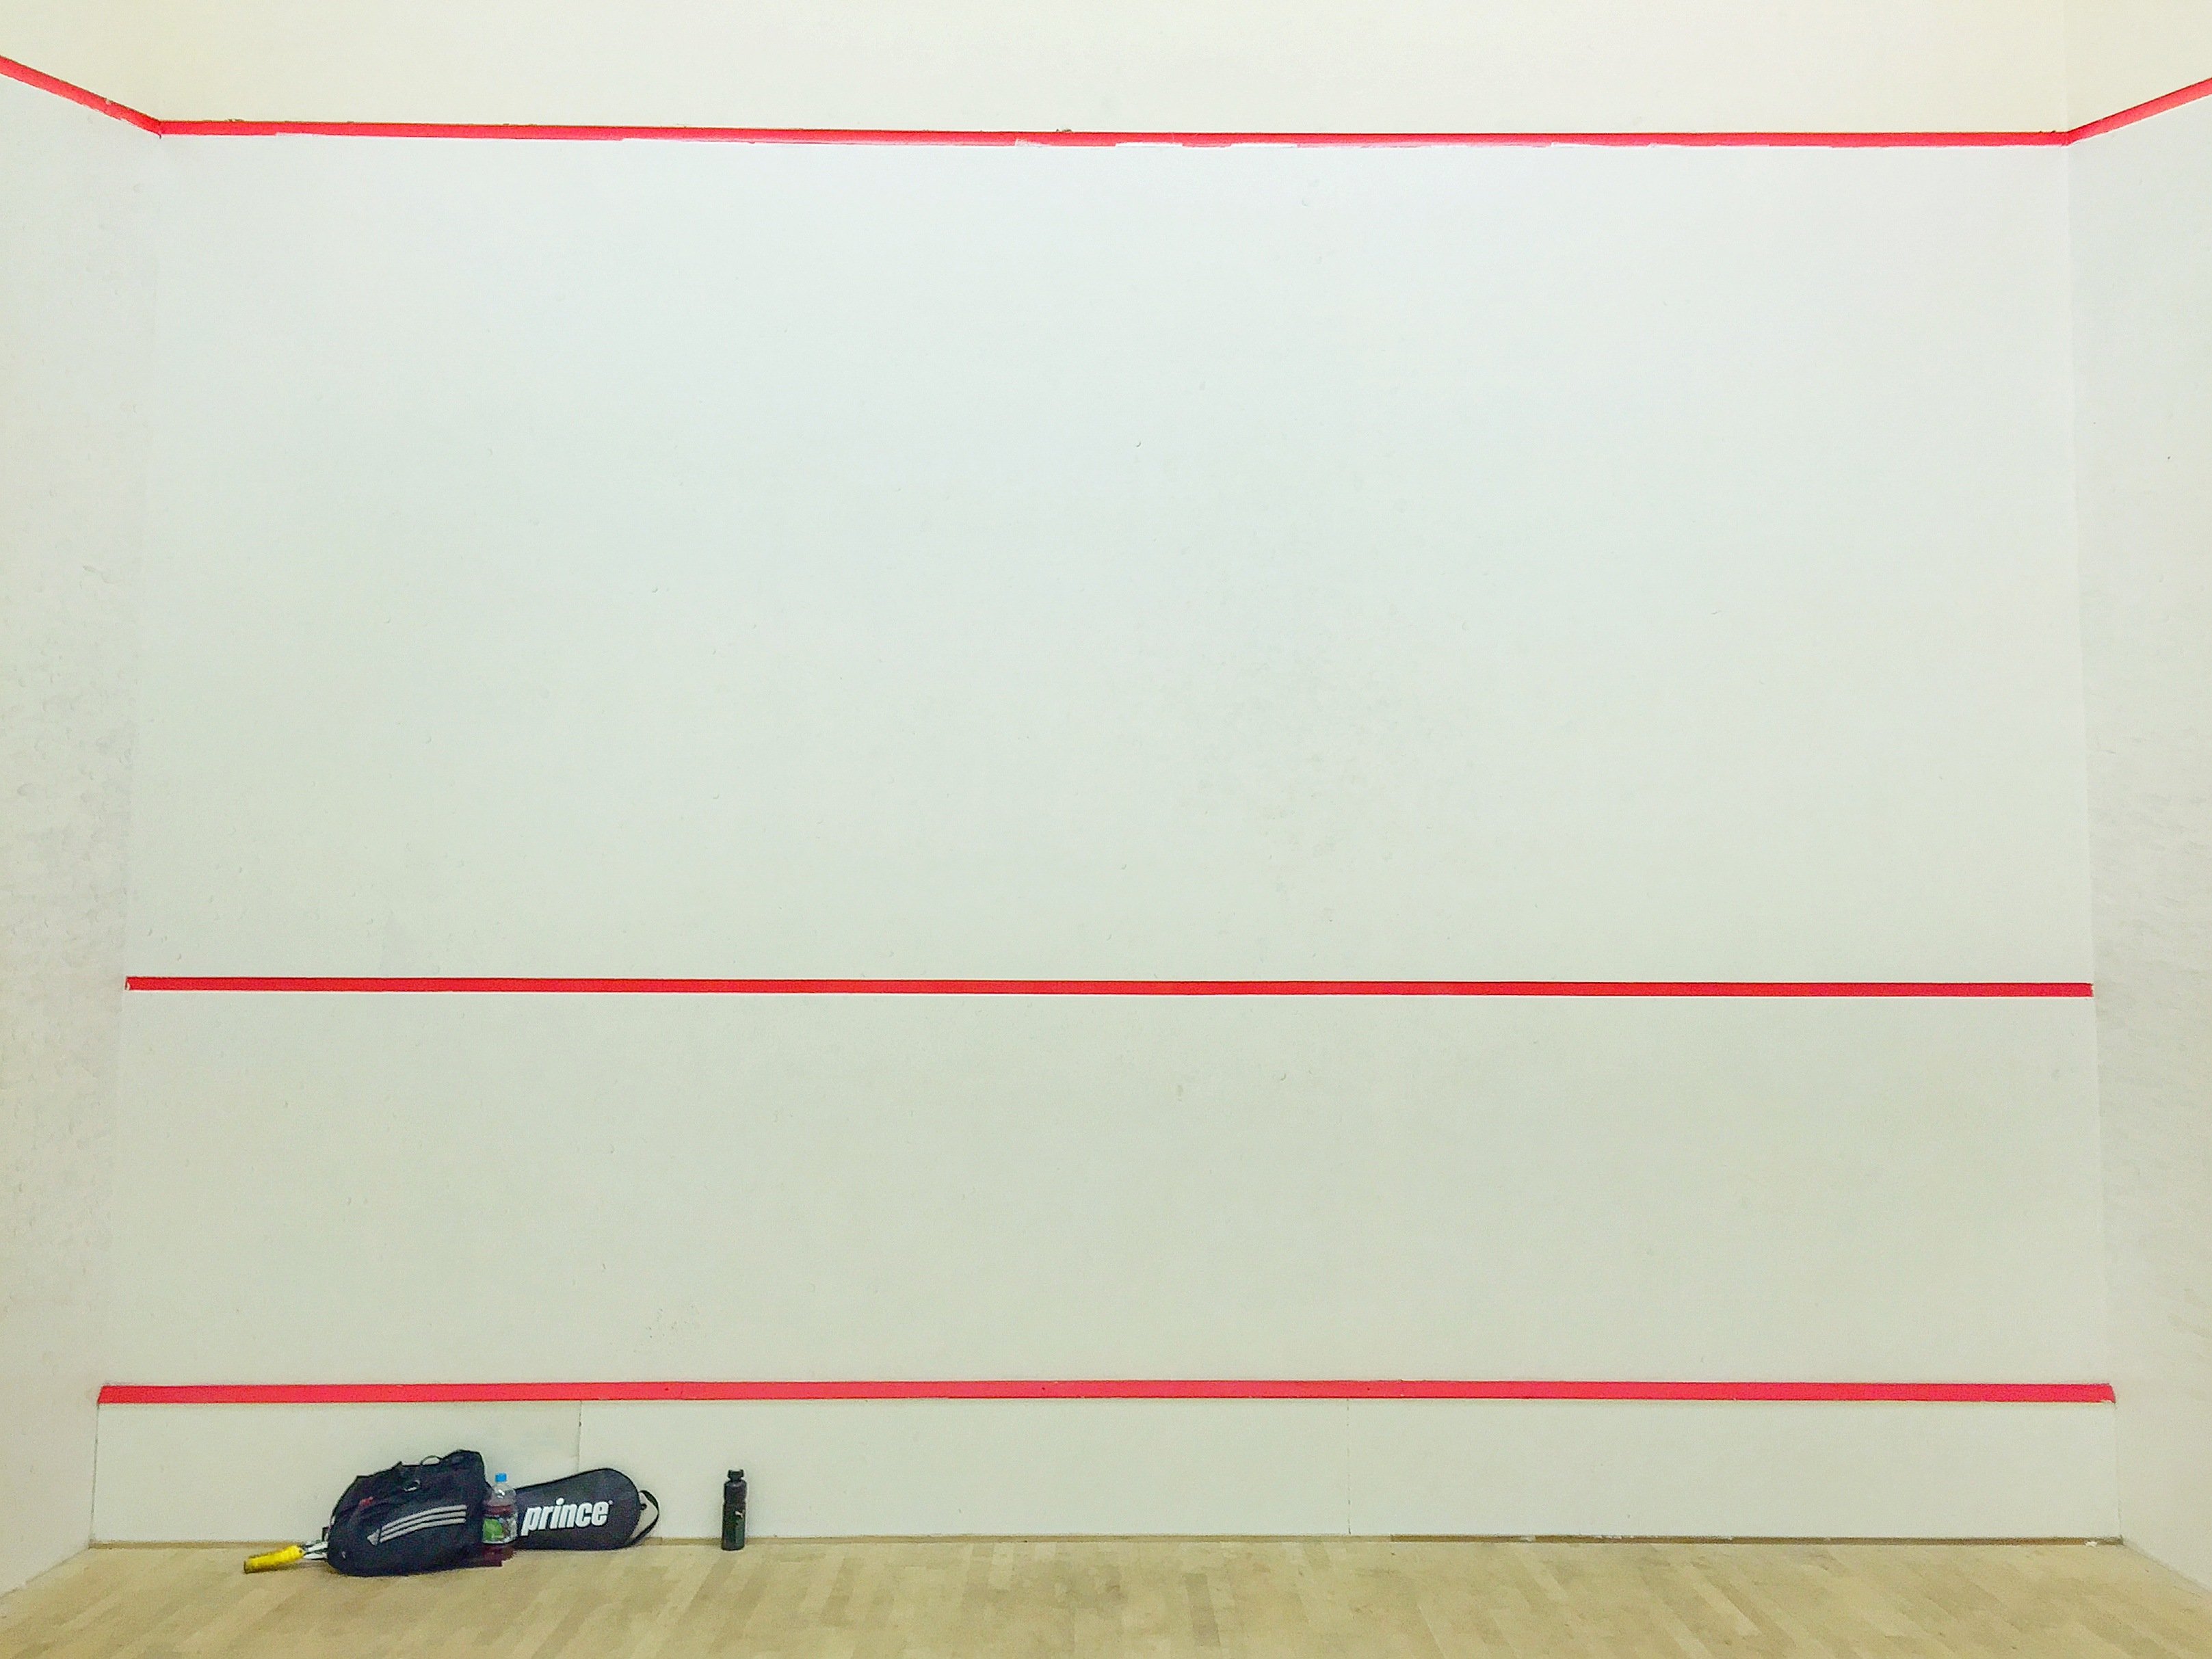 Squash Court front Wall and service lines